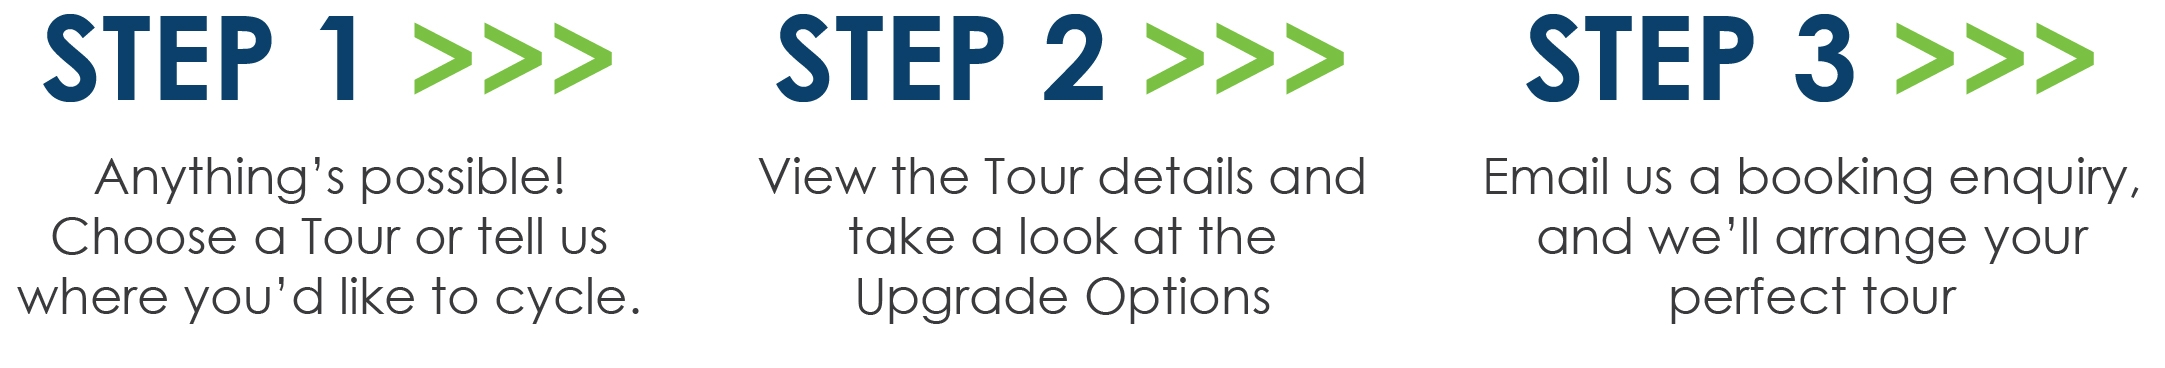 Wheelie Fantastic - 3 easy steps to your multi-day tour